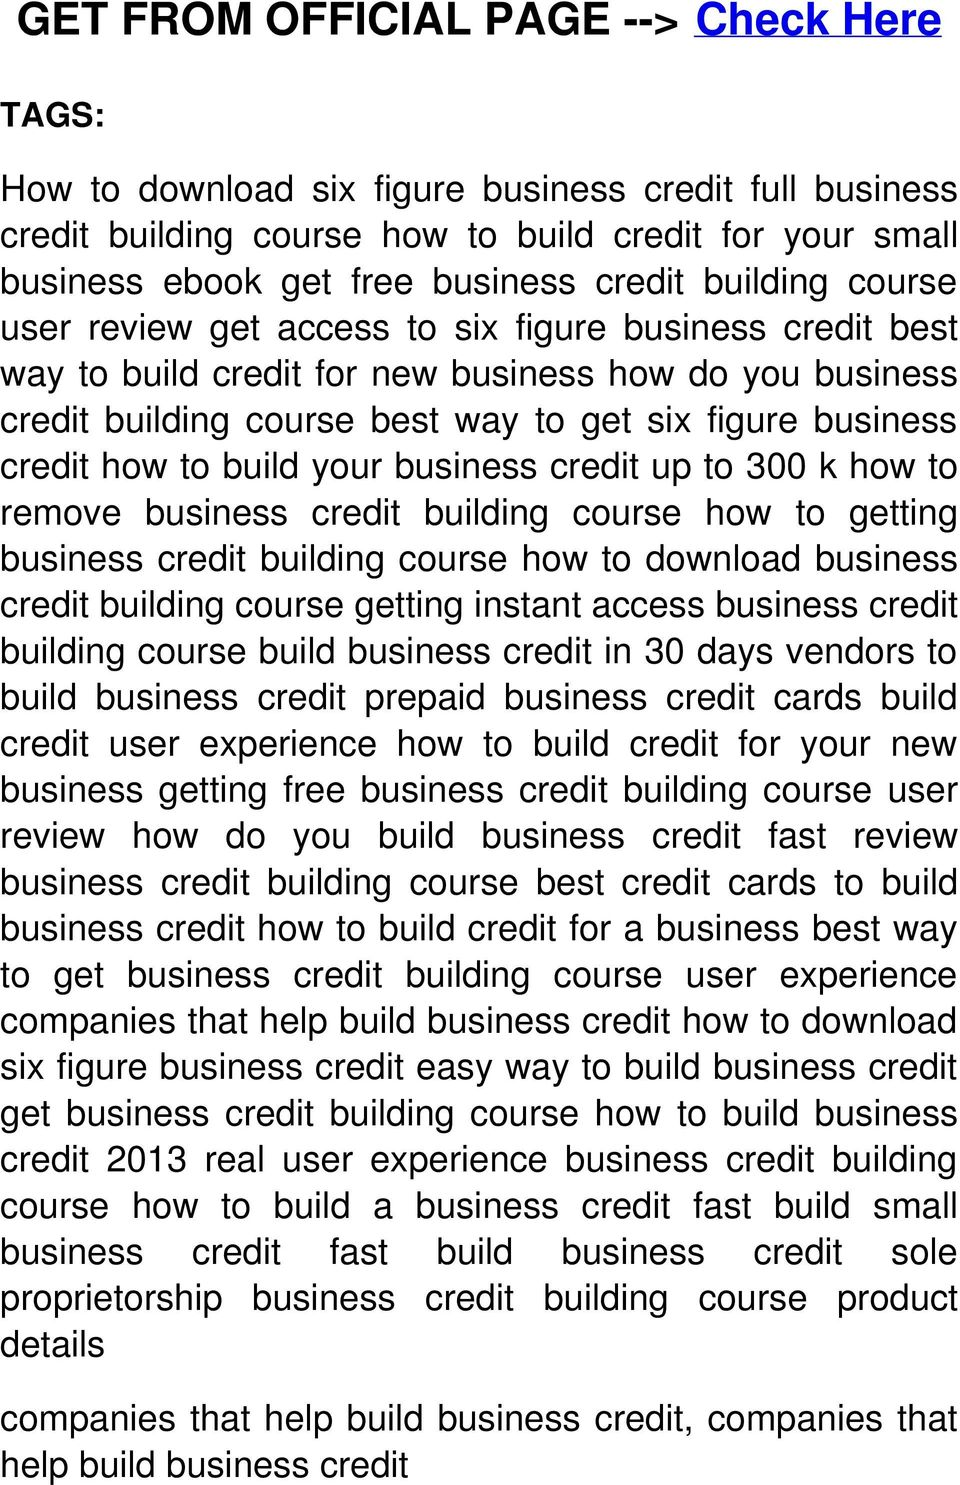 how to build your business credit up to 300 k how to remove business credit building course how to getting business credit building course how to download business credit building course getting